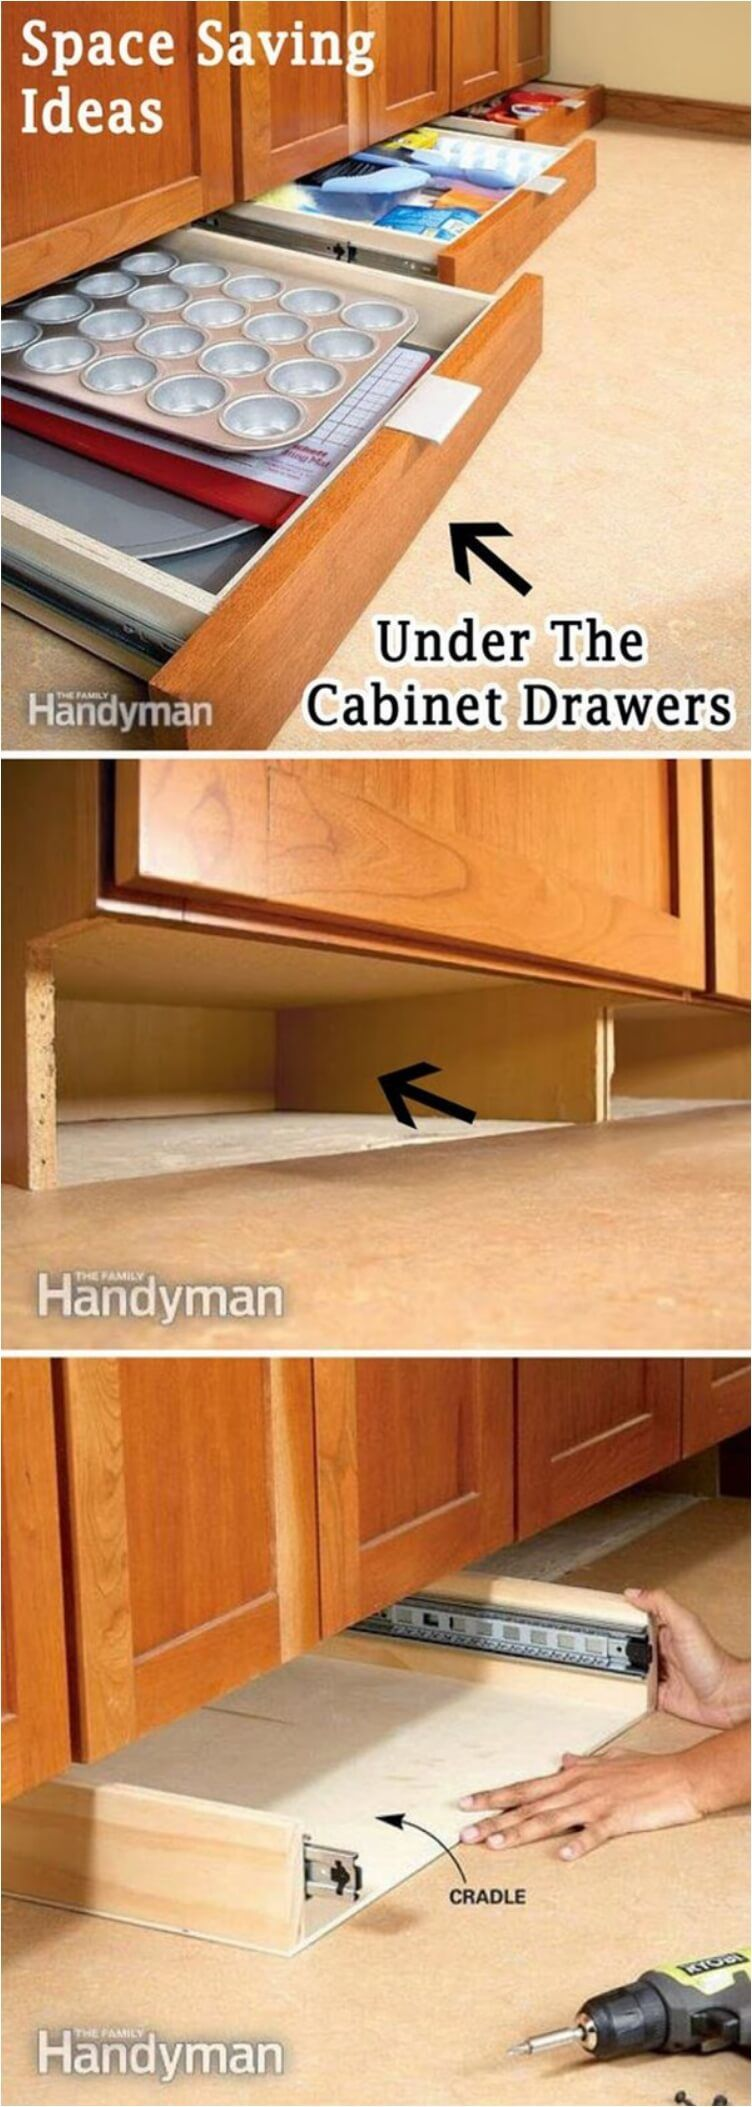 easy kitchen to build drawers youtube the make cabinet how way watch drawer under